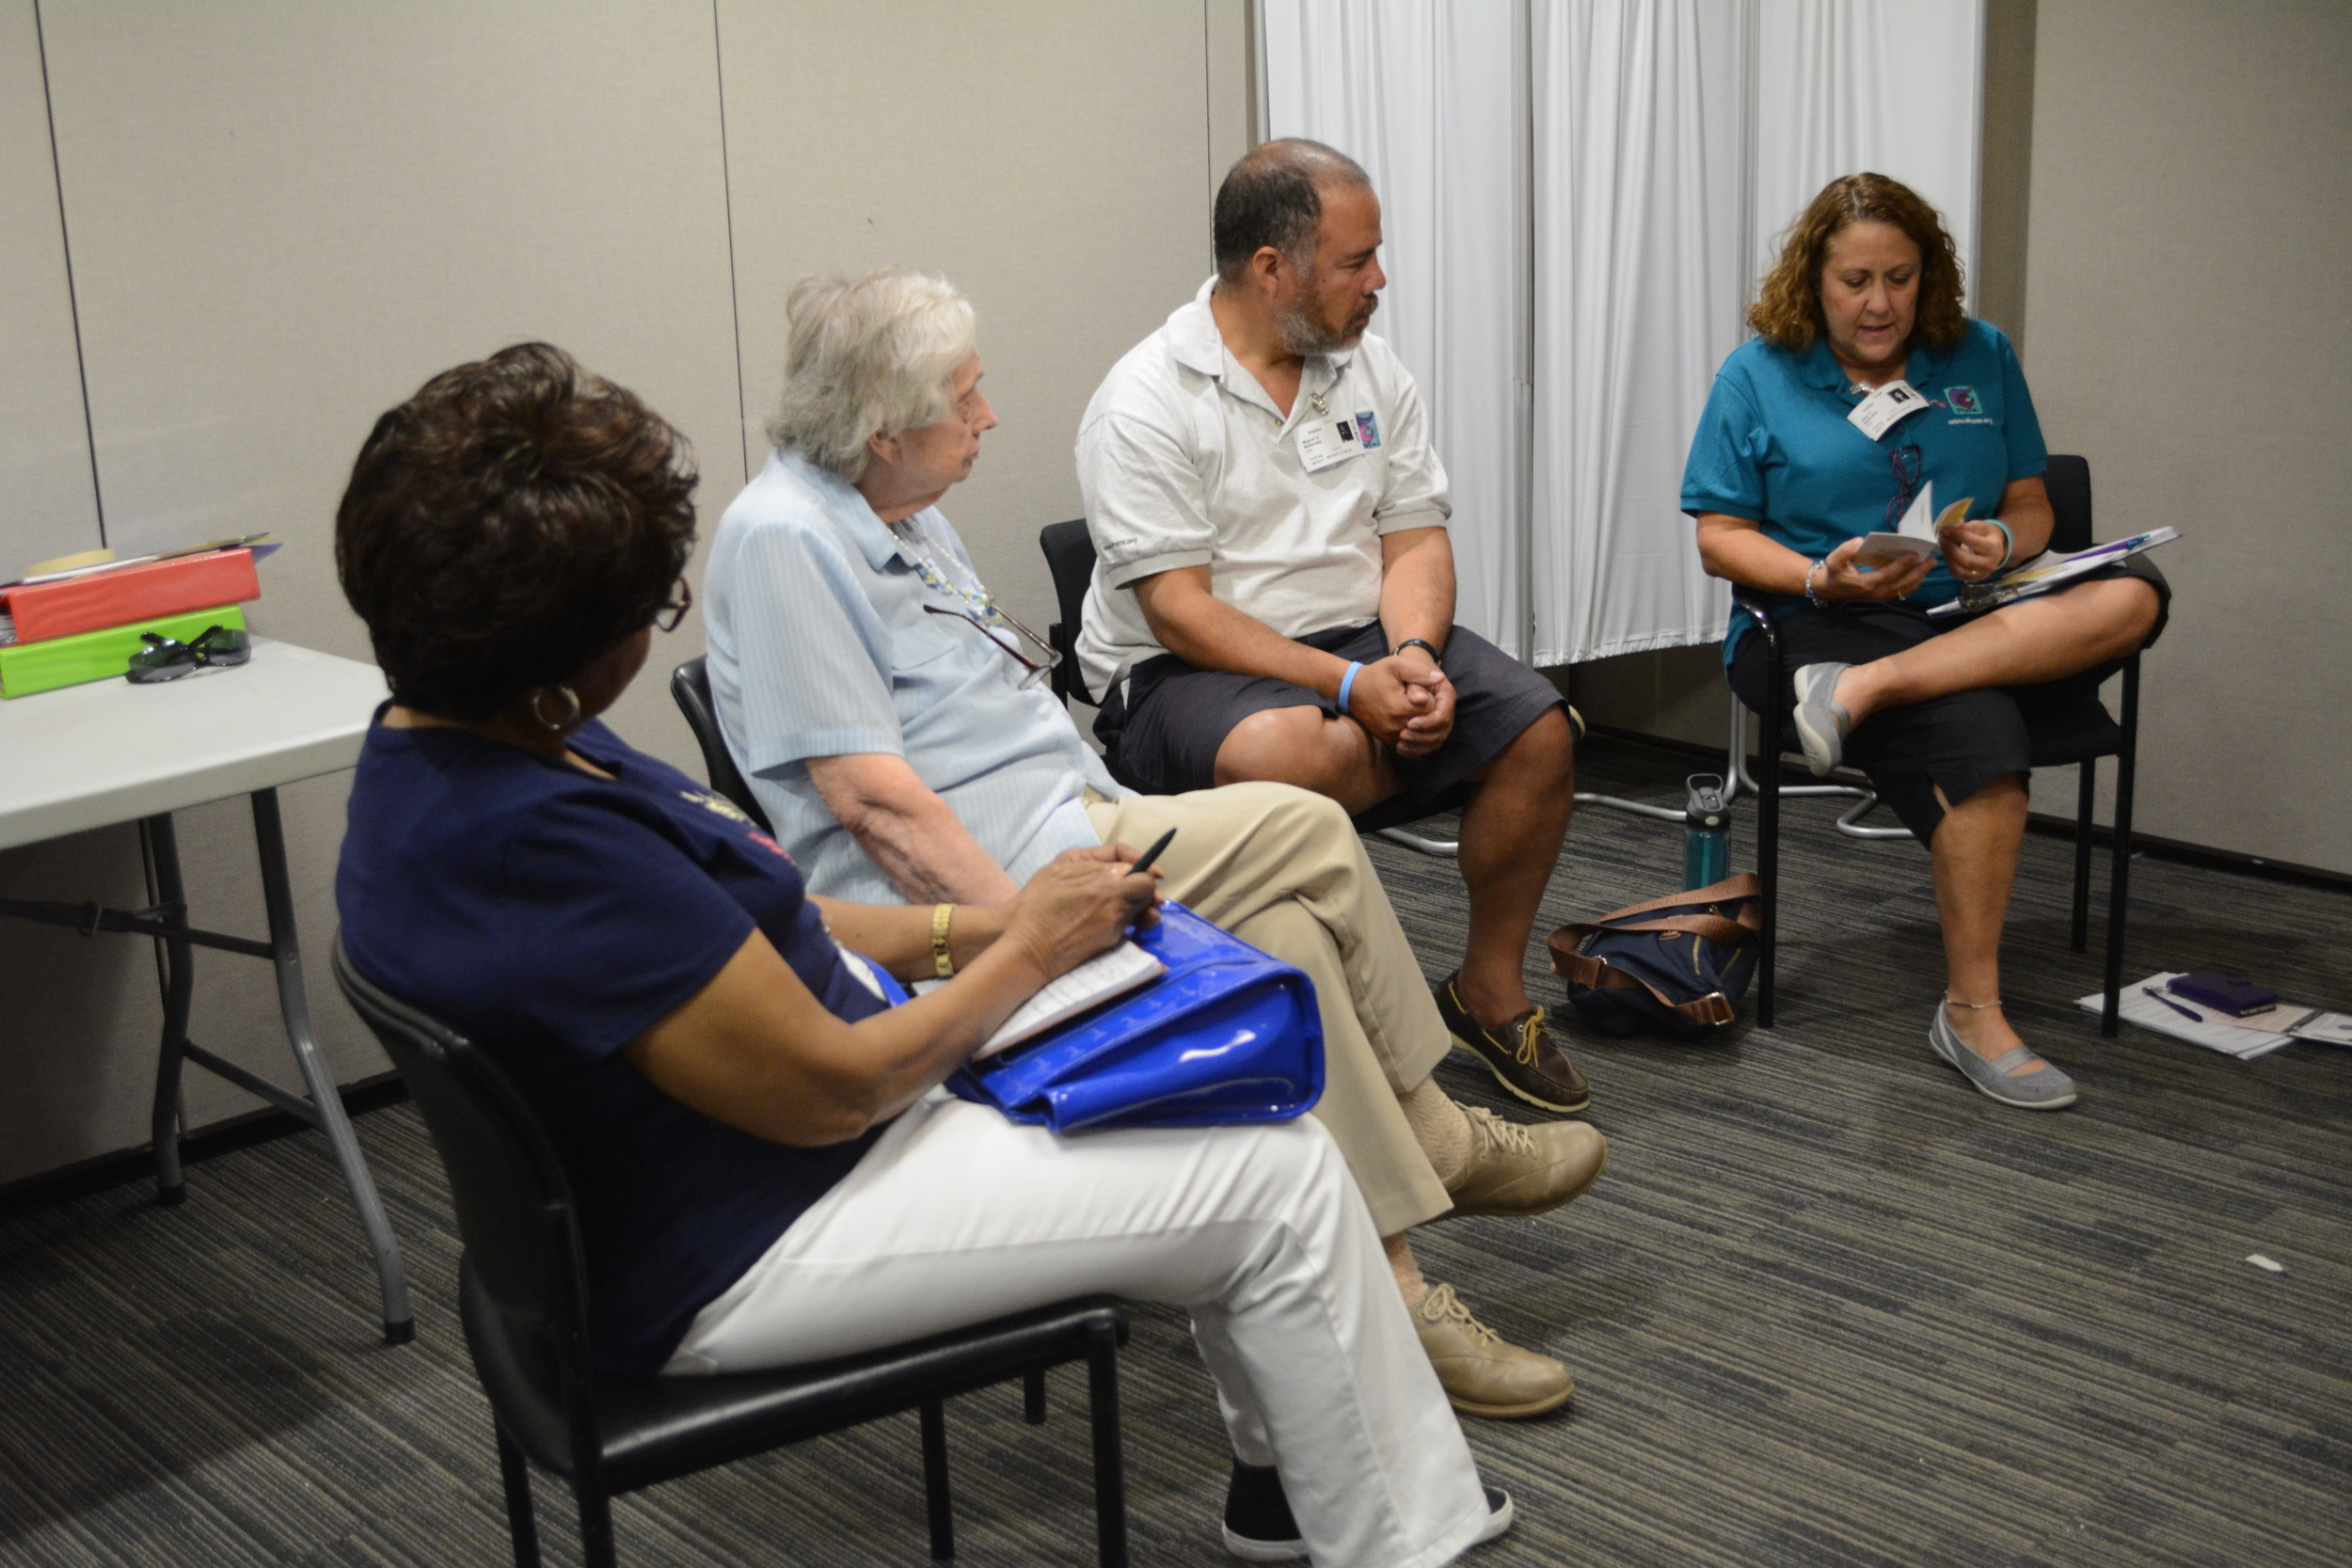 Members of the ThyCa support group shared details of their most recent doctor visits.